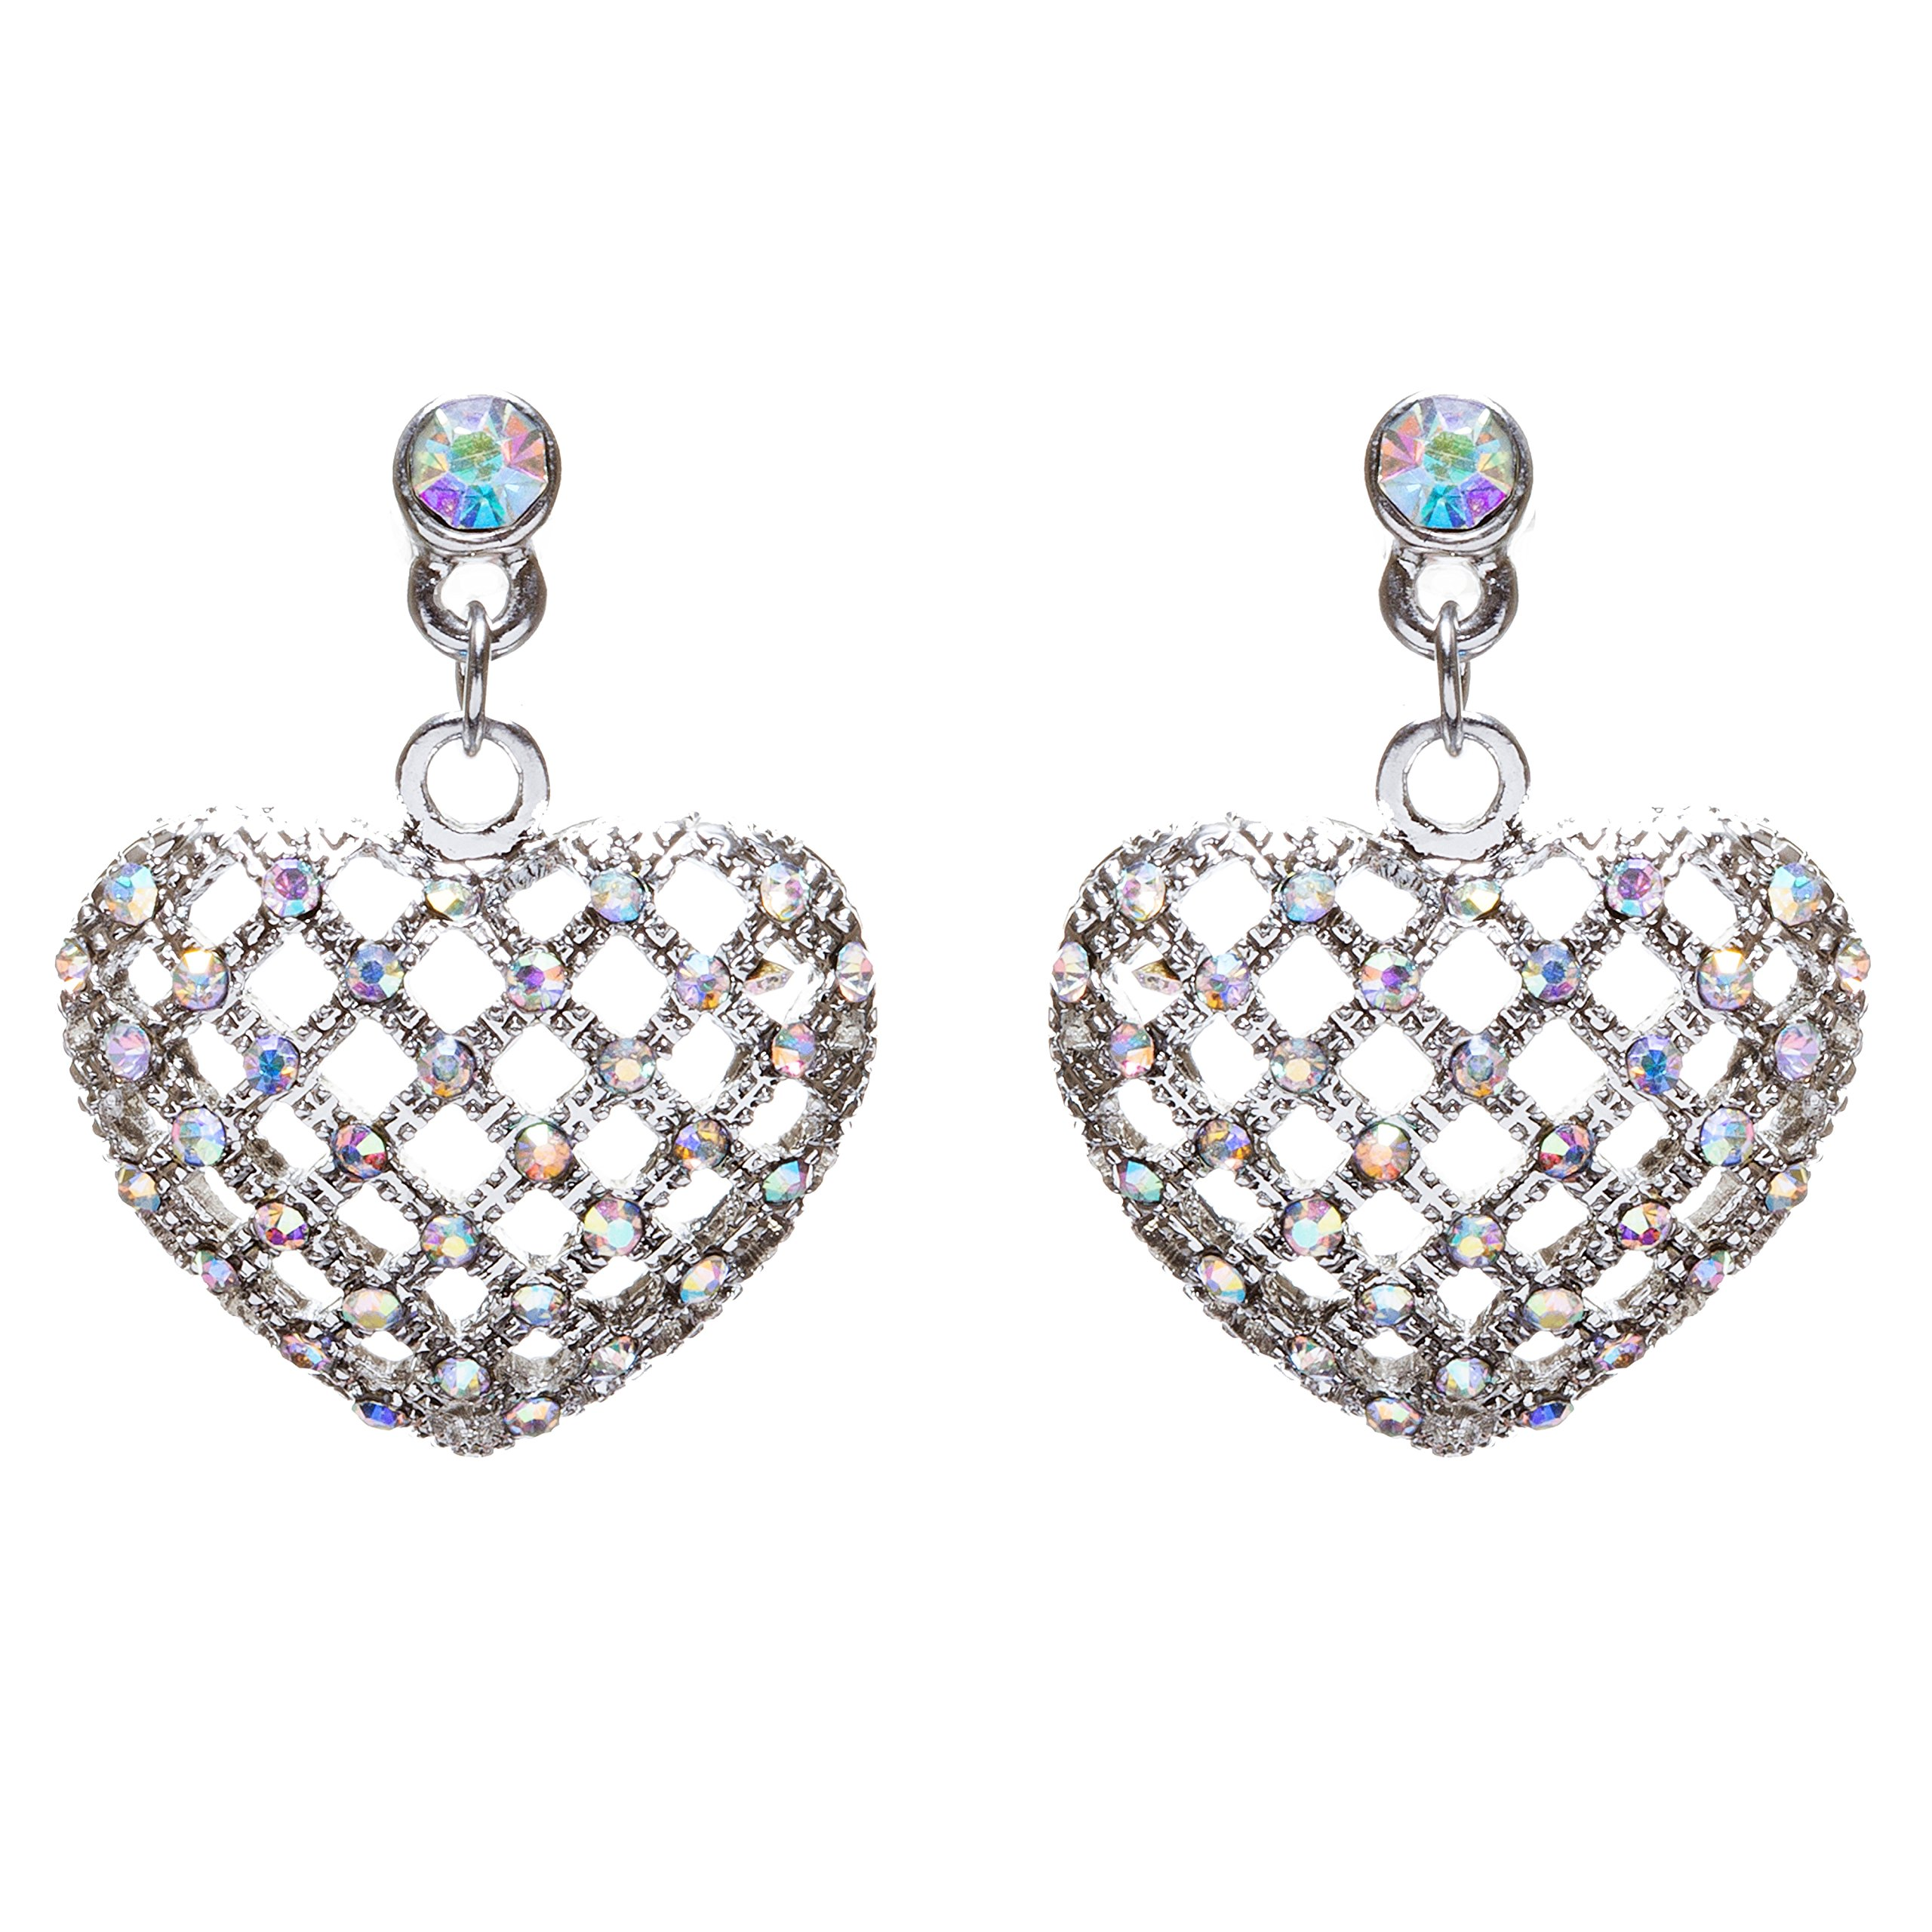 ACCESSORIESFOREVER Women Valentine's Day Jewelry Crystal Rhinestone Charming Heart Dangle Earrings E933SV